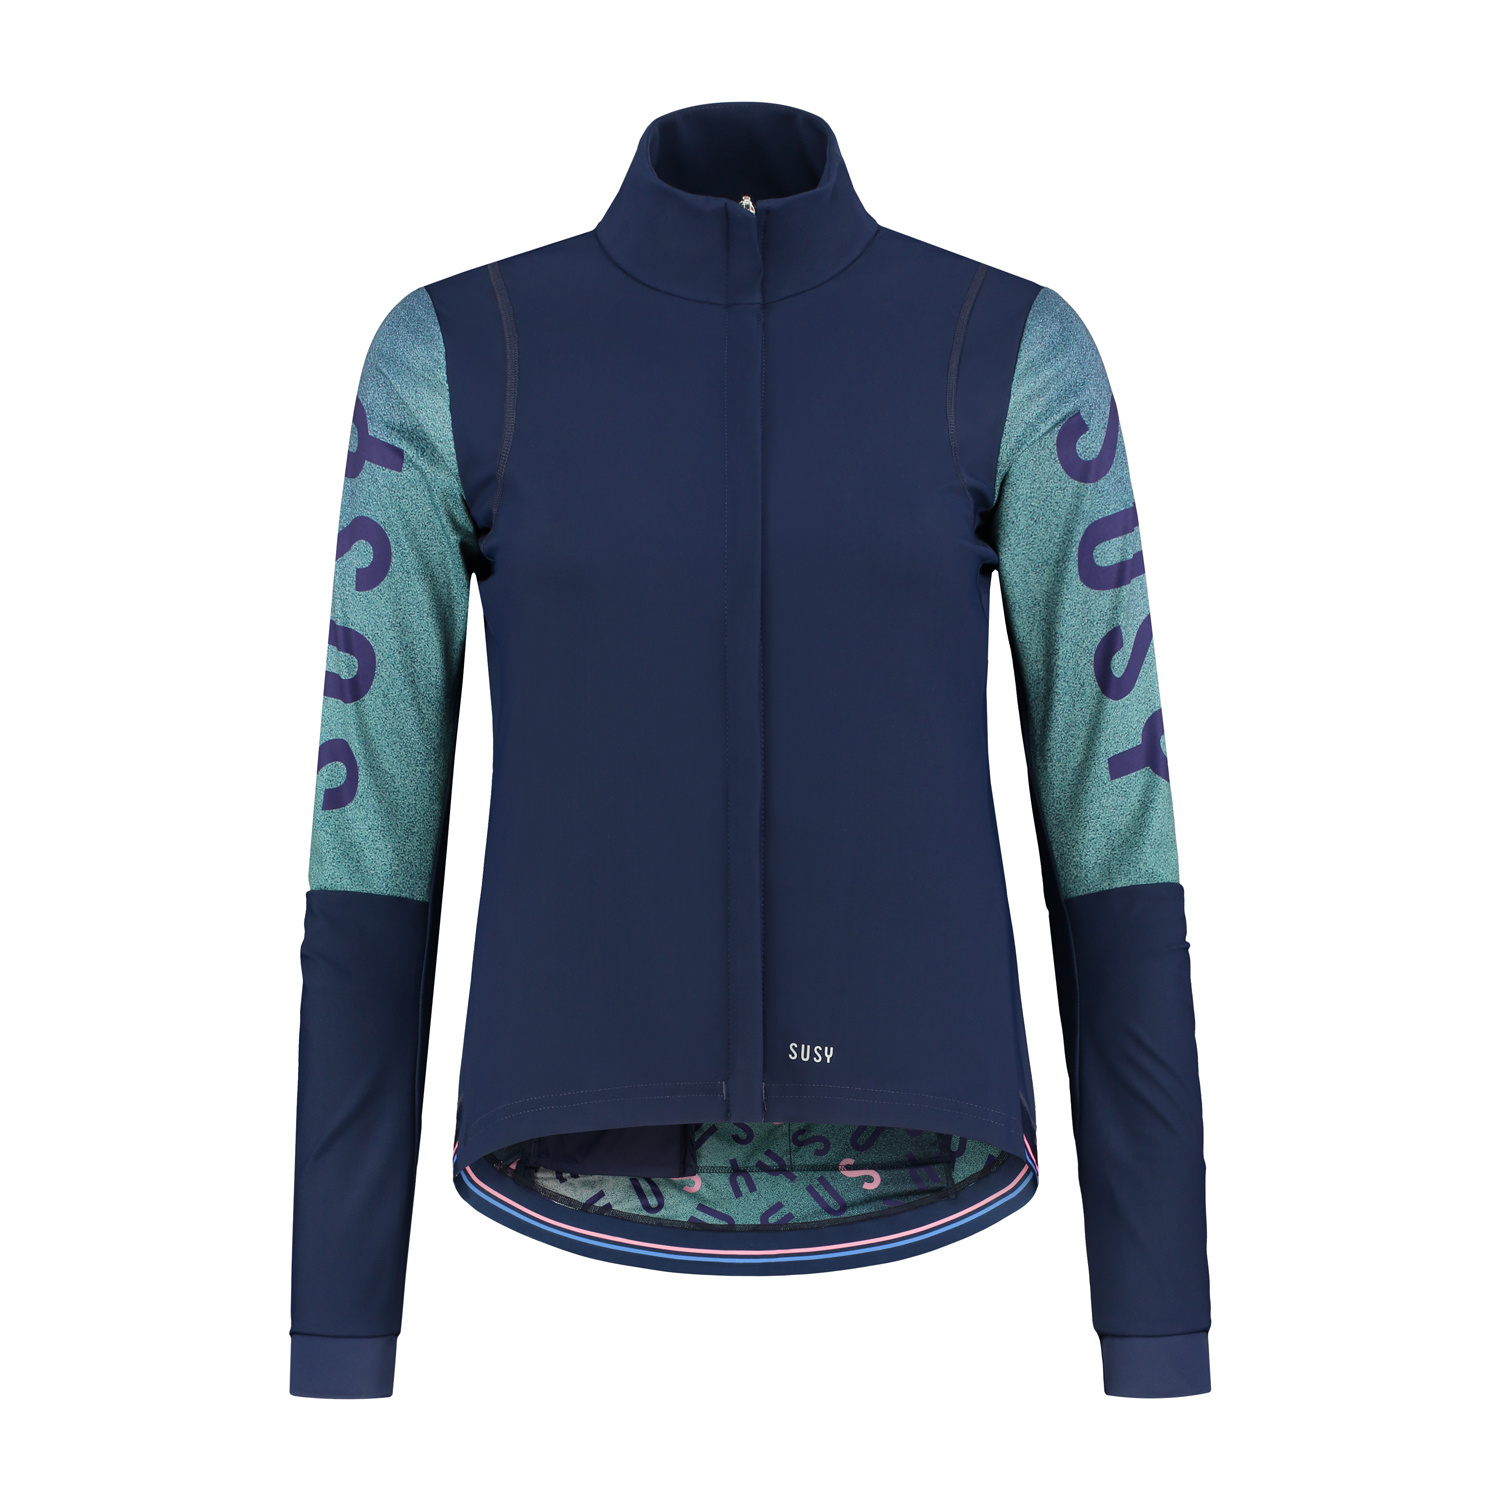 Women's cycling jacket Wind & waterproof